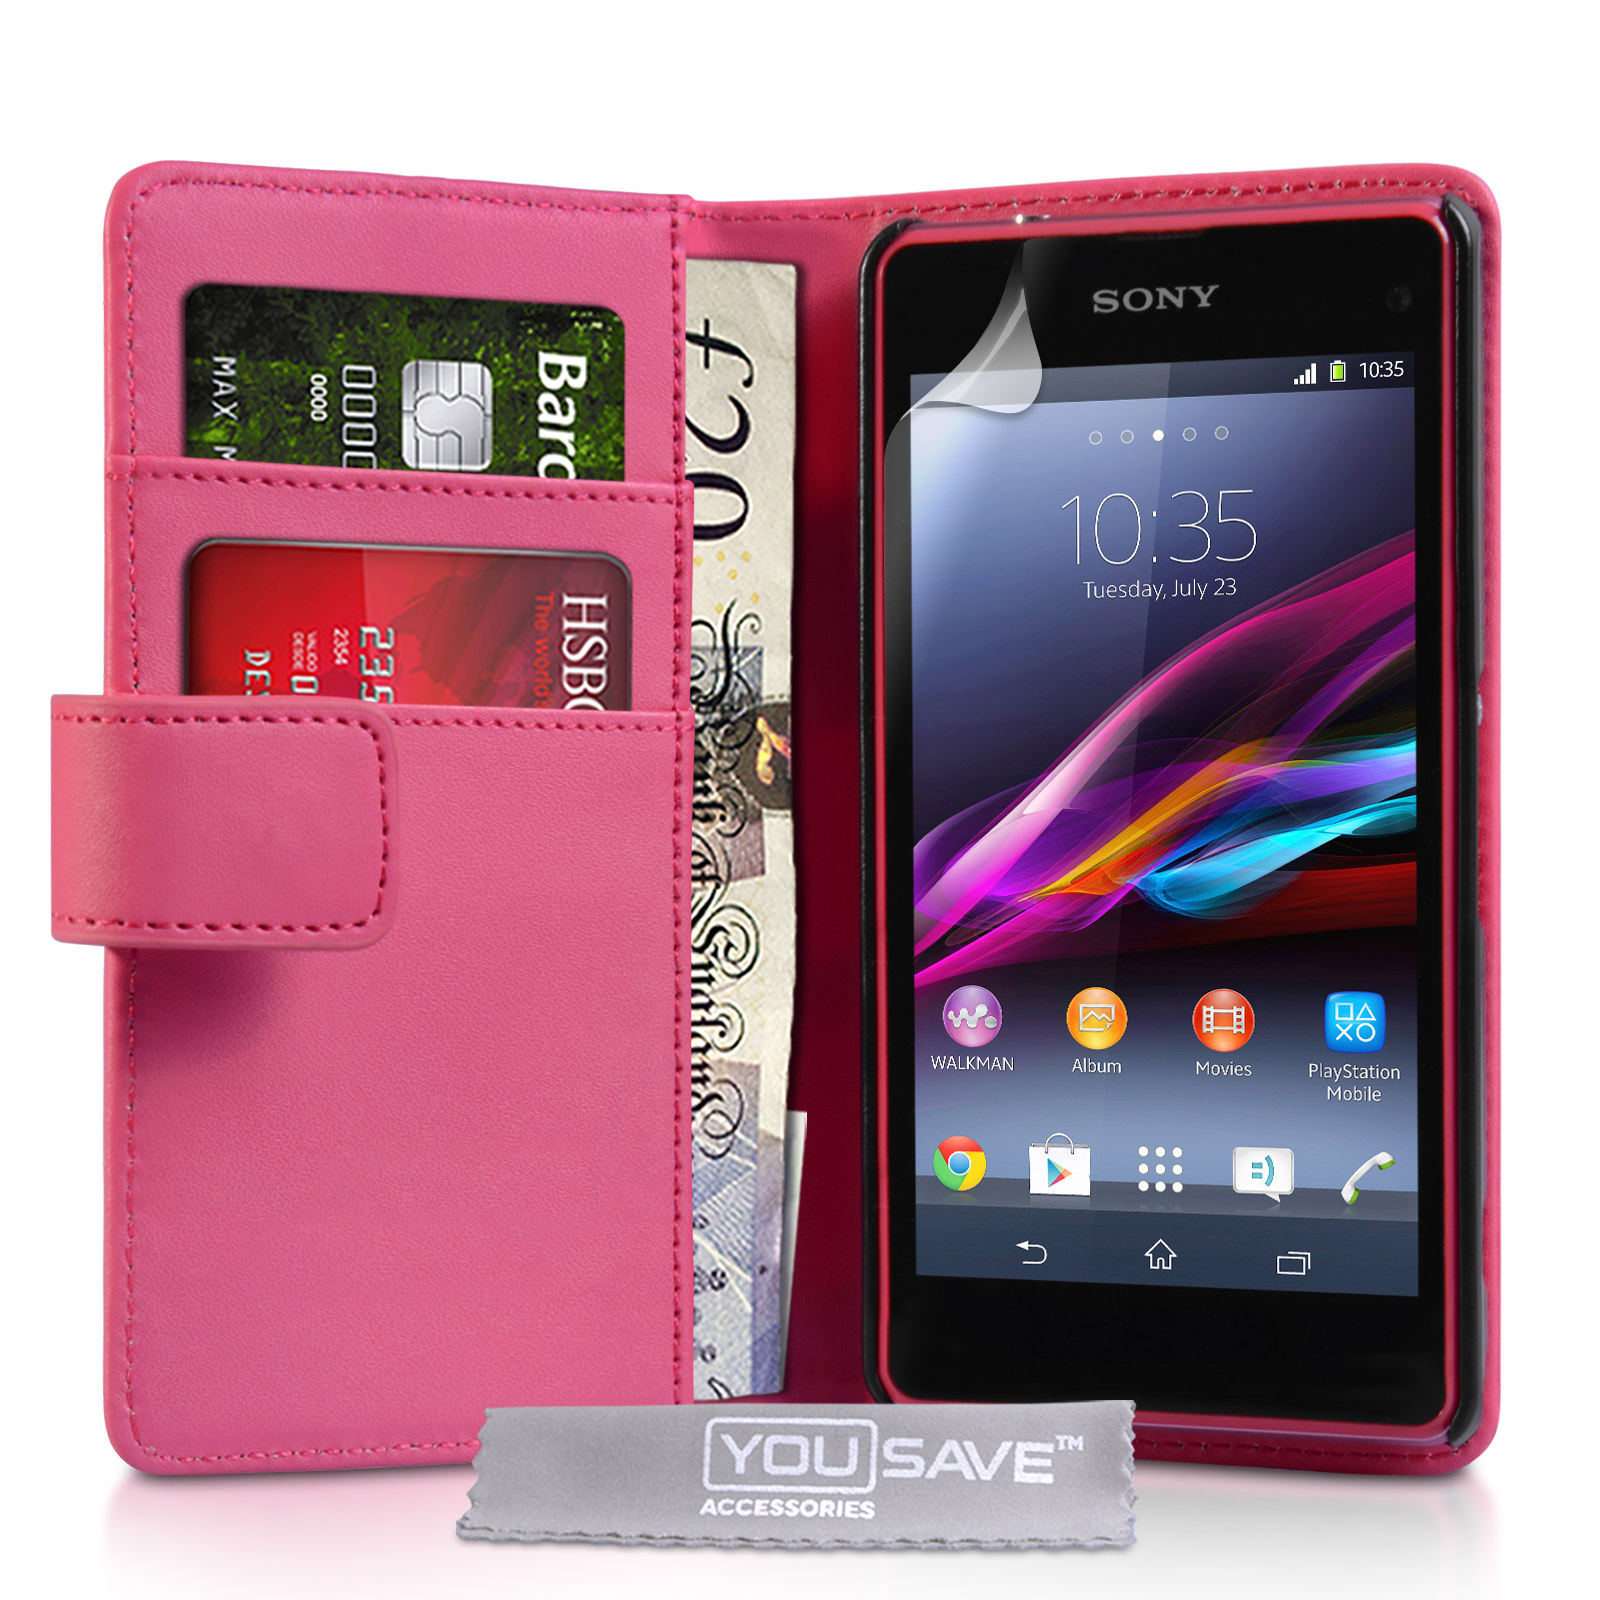 YouSave Sony Xperia Z1 Compact Leather-Effect Wallet Case - Hot Pink